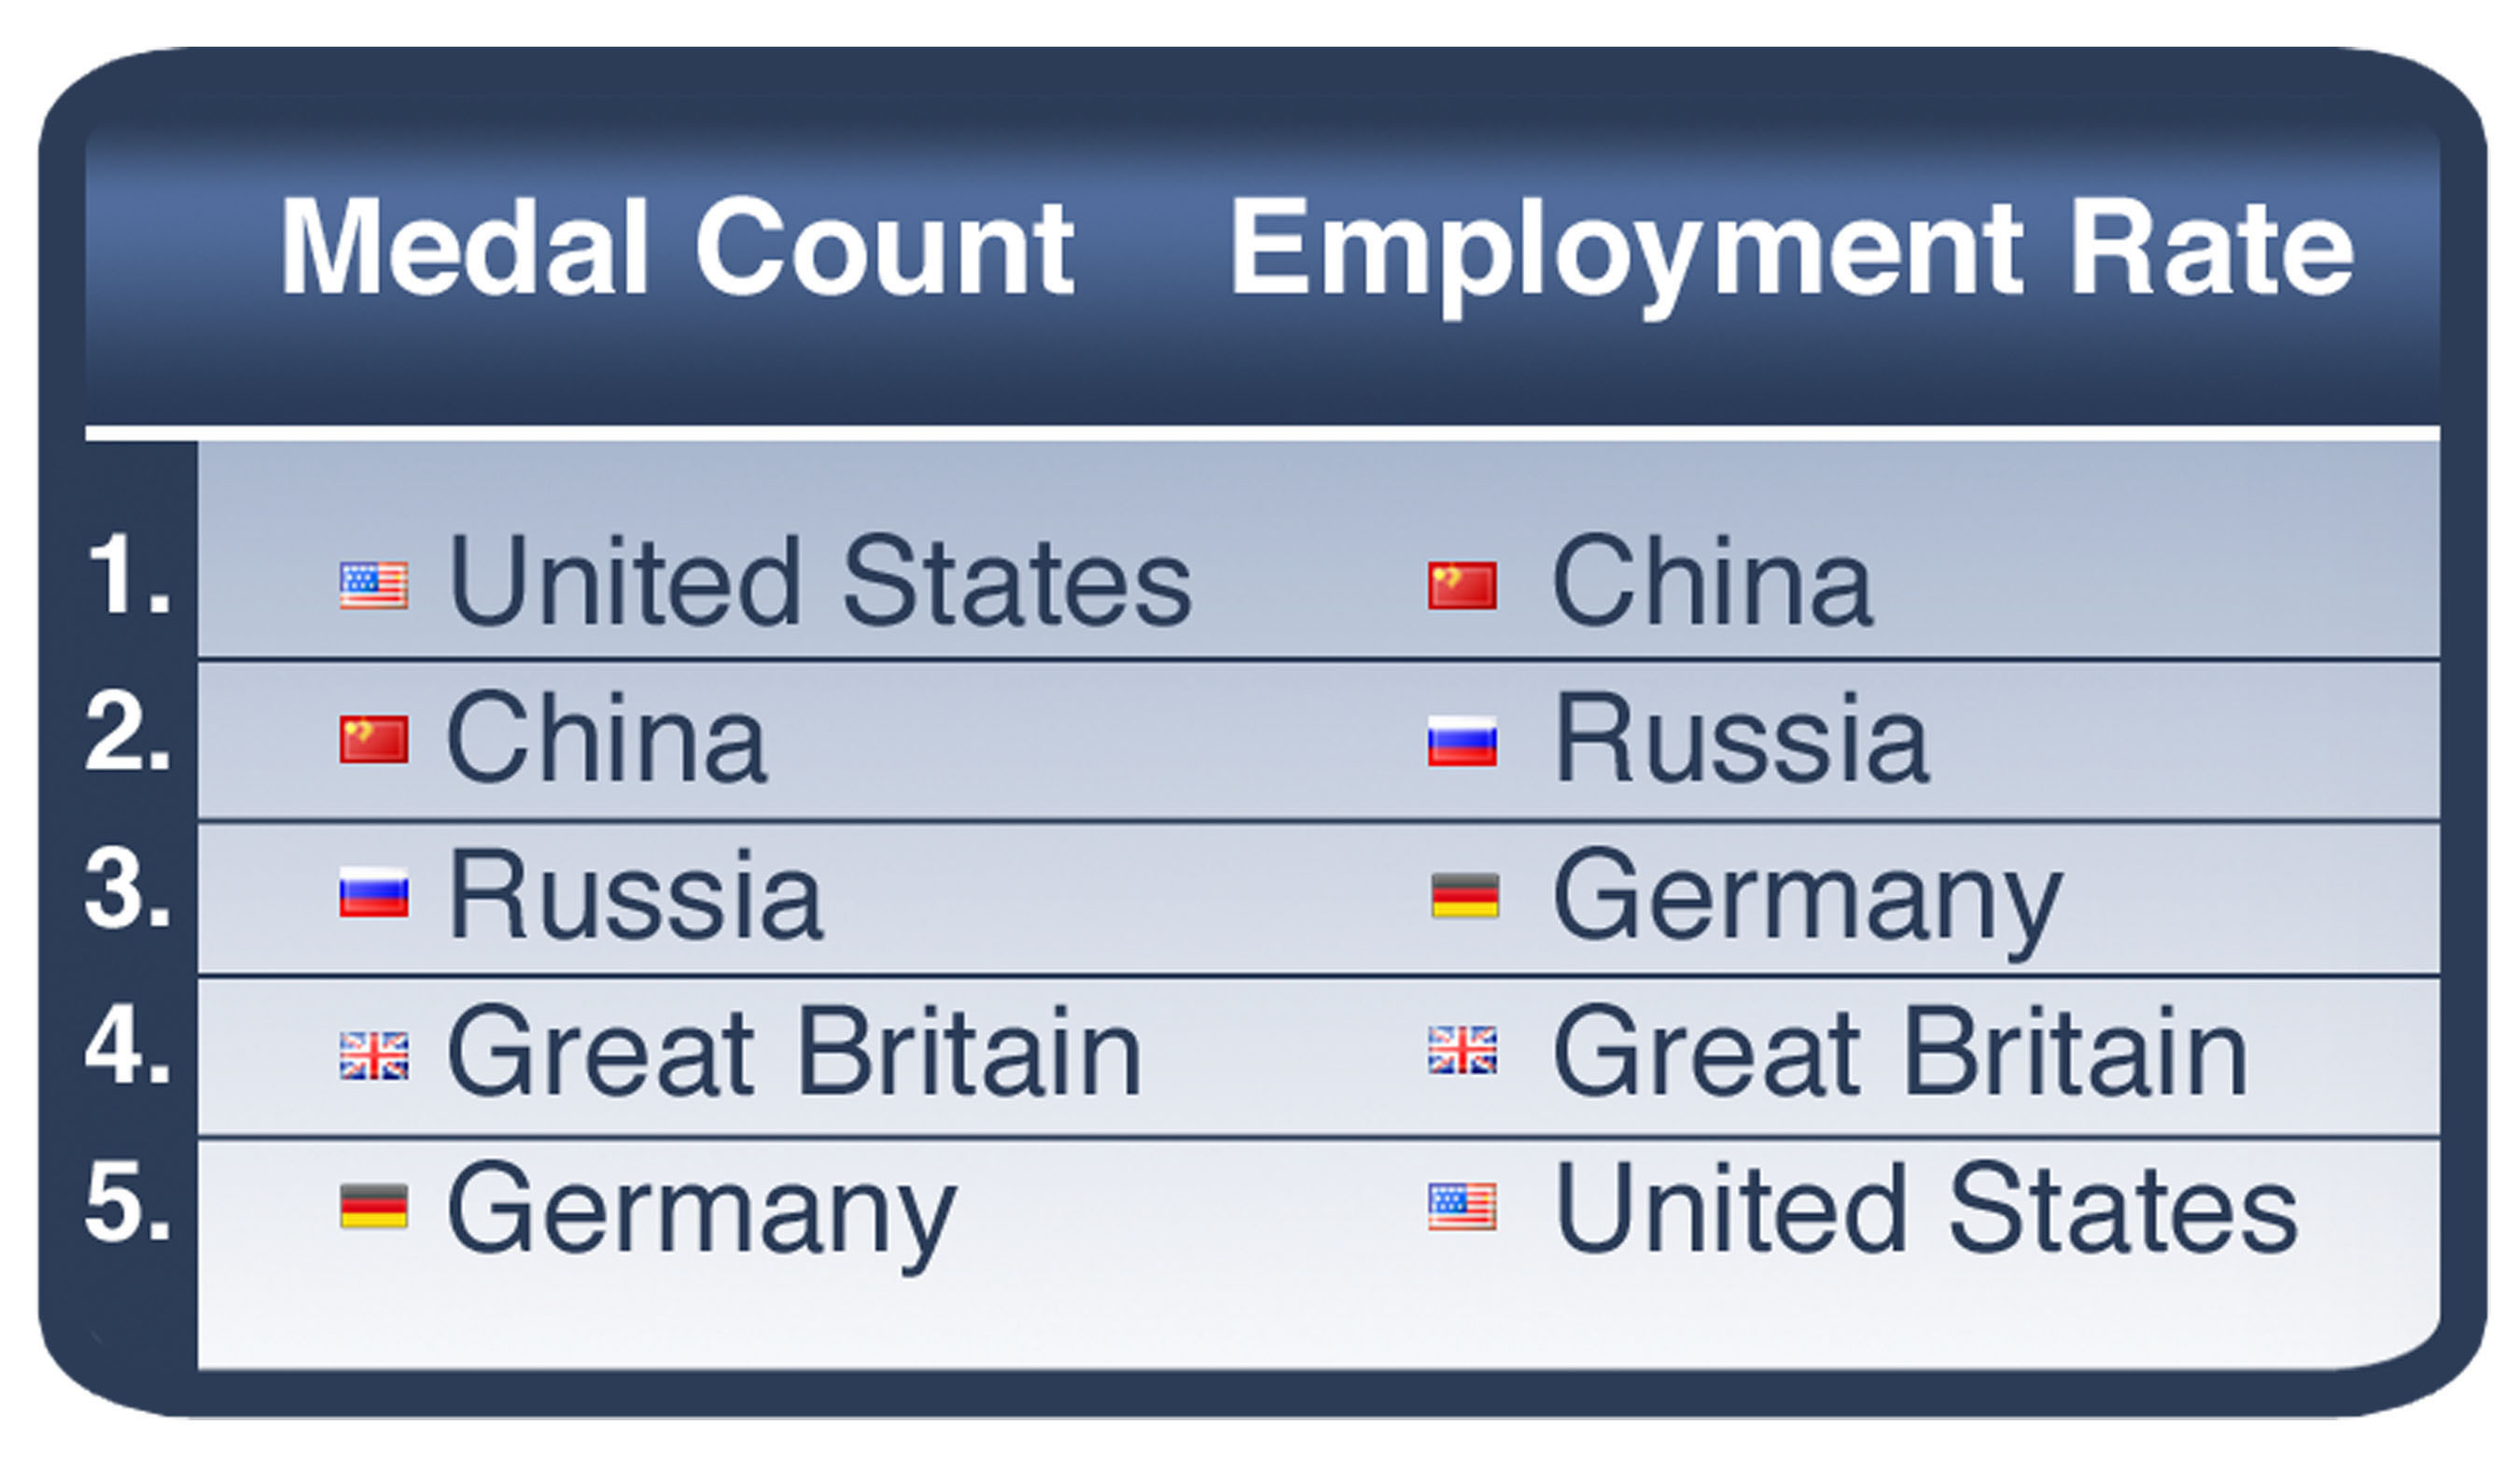 A RiseSmart analysis of unemployment data for the top five medal winners shows that the U.S. lags behind its chief athletic rivals.  The U.S. Olympic Team finished the 2012 Olympic Games with 104 medals, besting its rivals from China, which had 87, Russia (with 82), Great Britain (65), and Germany (44). However, when it comes to unemployment, a ranking among those nations leaves the U.S. in last place. The U.S. unemployment rate of 8.3 percent lags behind those of China (4.1 %), Russia (5.4%), Germany (6.8%), and Great Britain (8.1%), ...